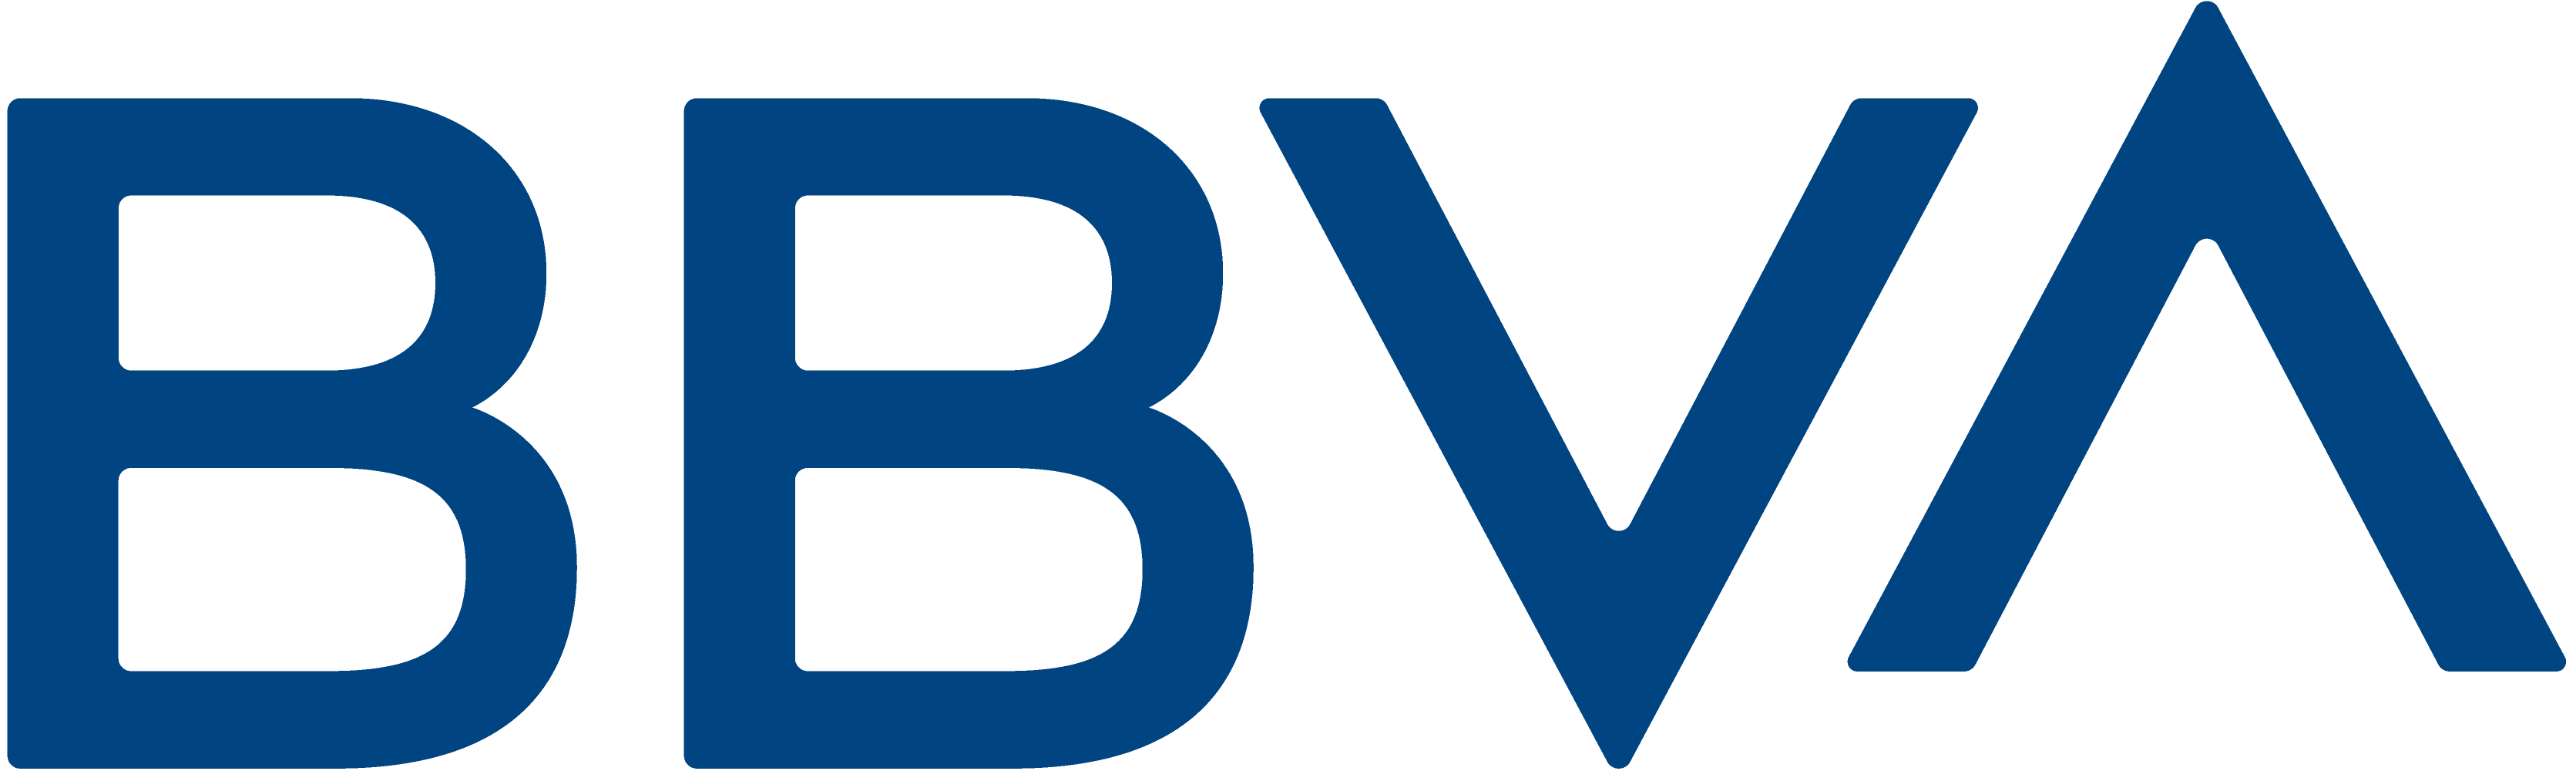 BBVA - Take a tour